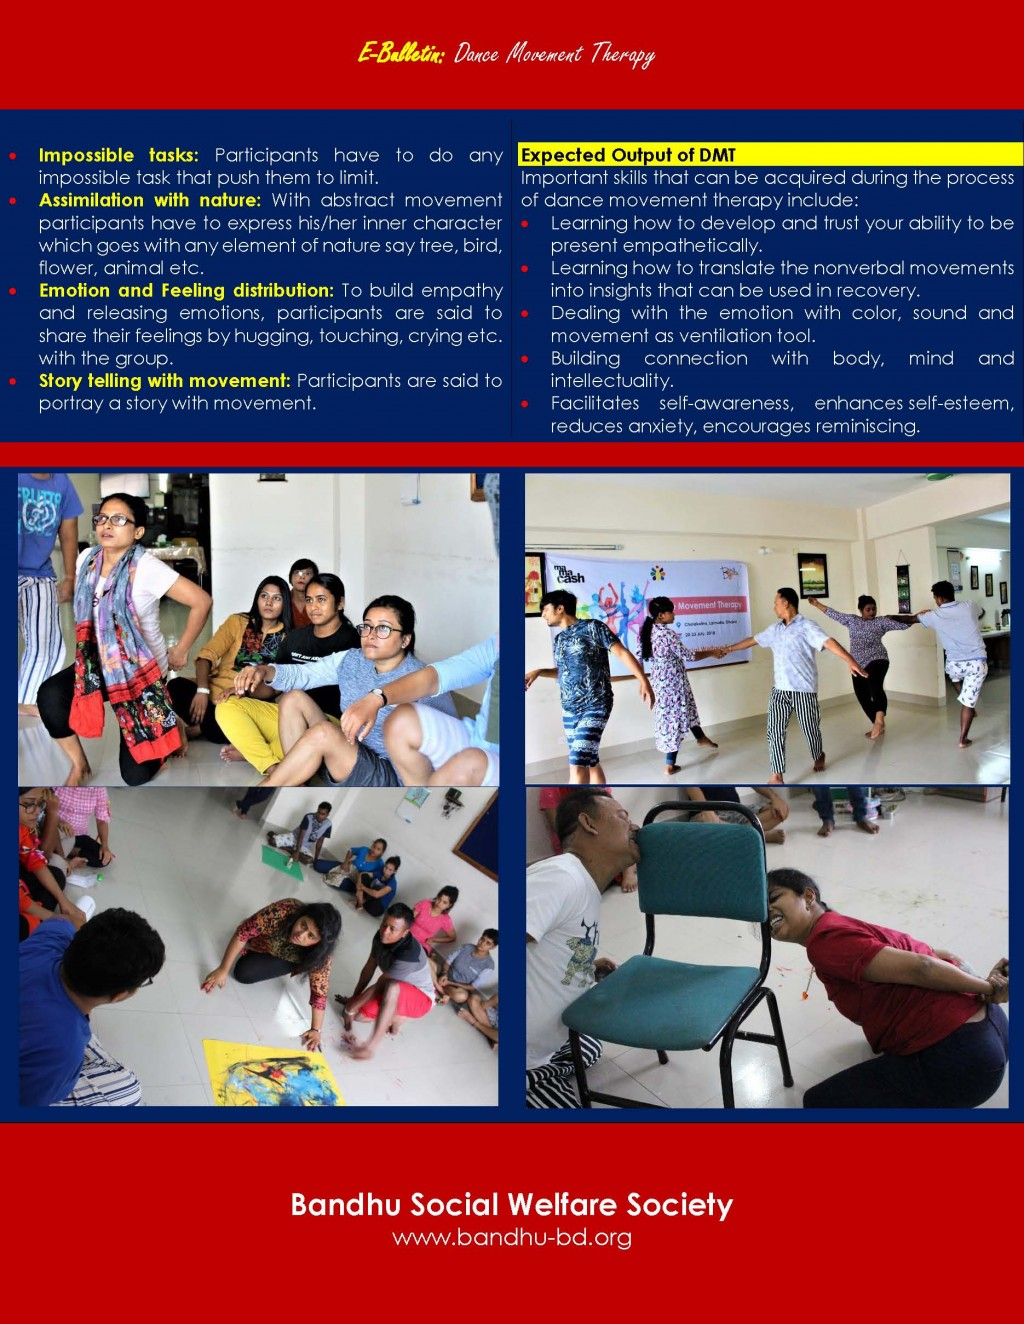 E-bulletin_Dance Movement Therapy_Page_2